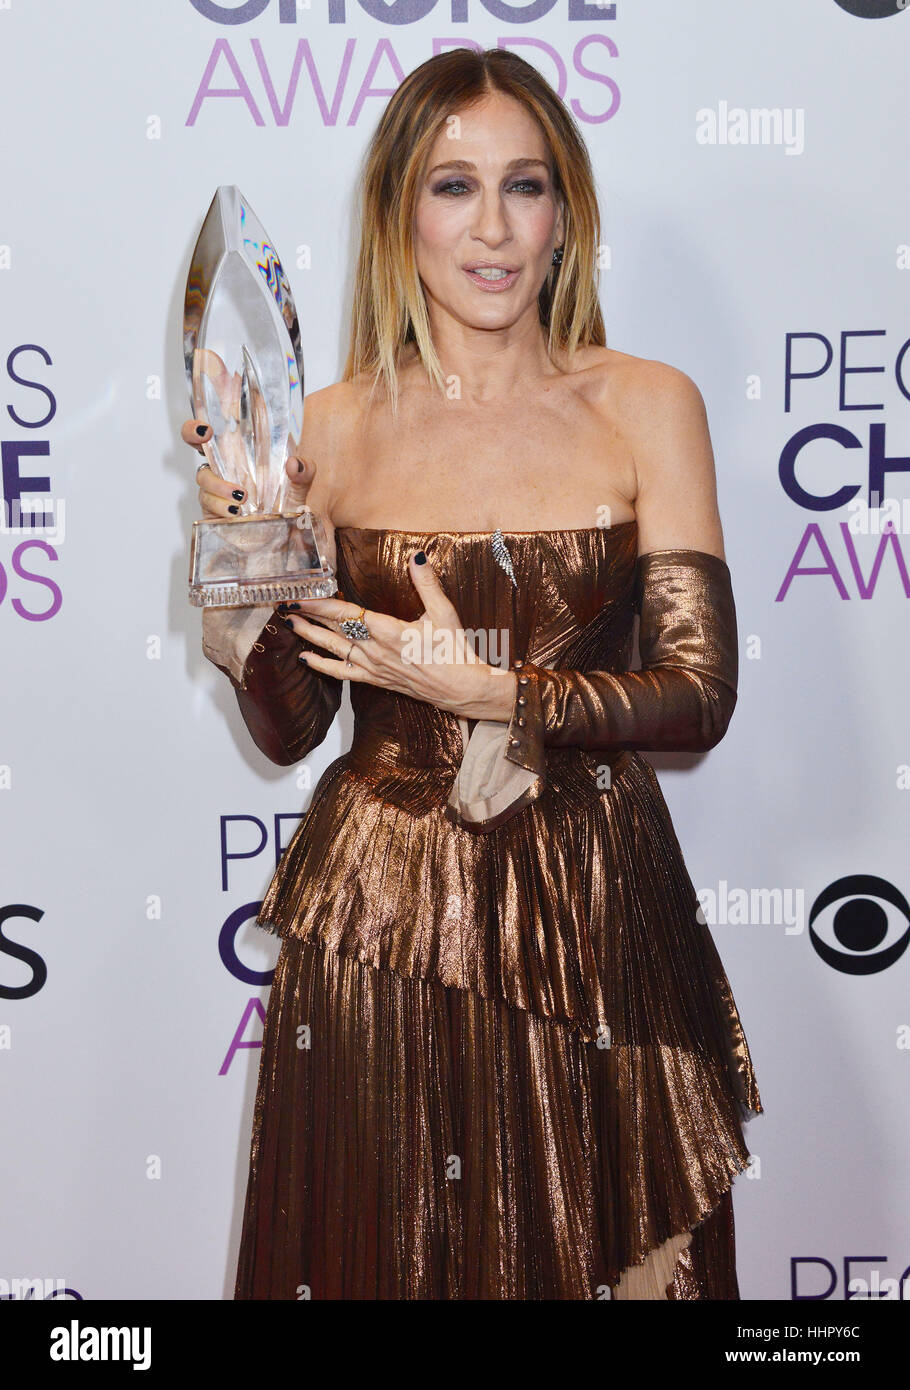 Sarah Jessica Parker 233 arrivant au People's Choice Awards 2017 au Theatre de Los Angeles. 18 janvier, 2017. Photo Stock